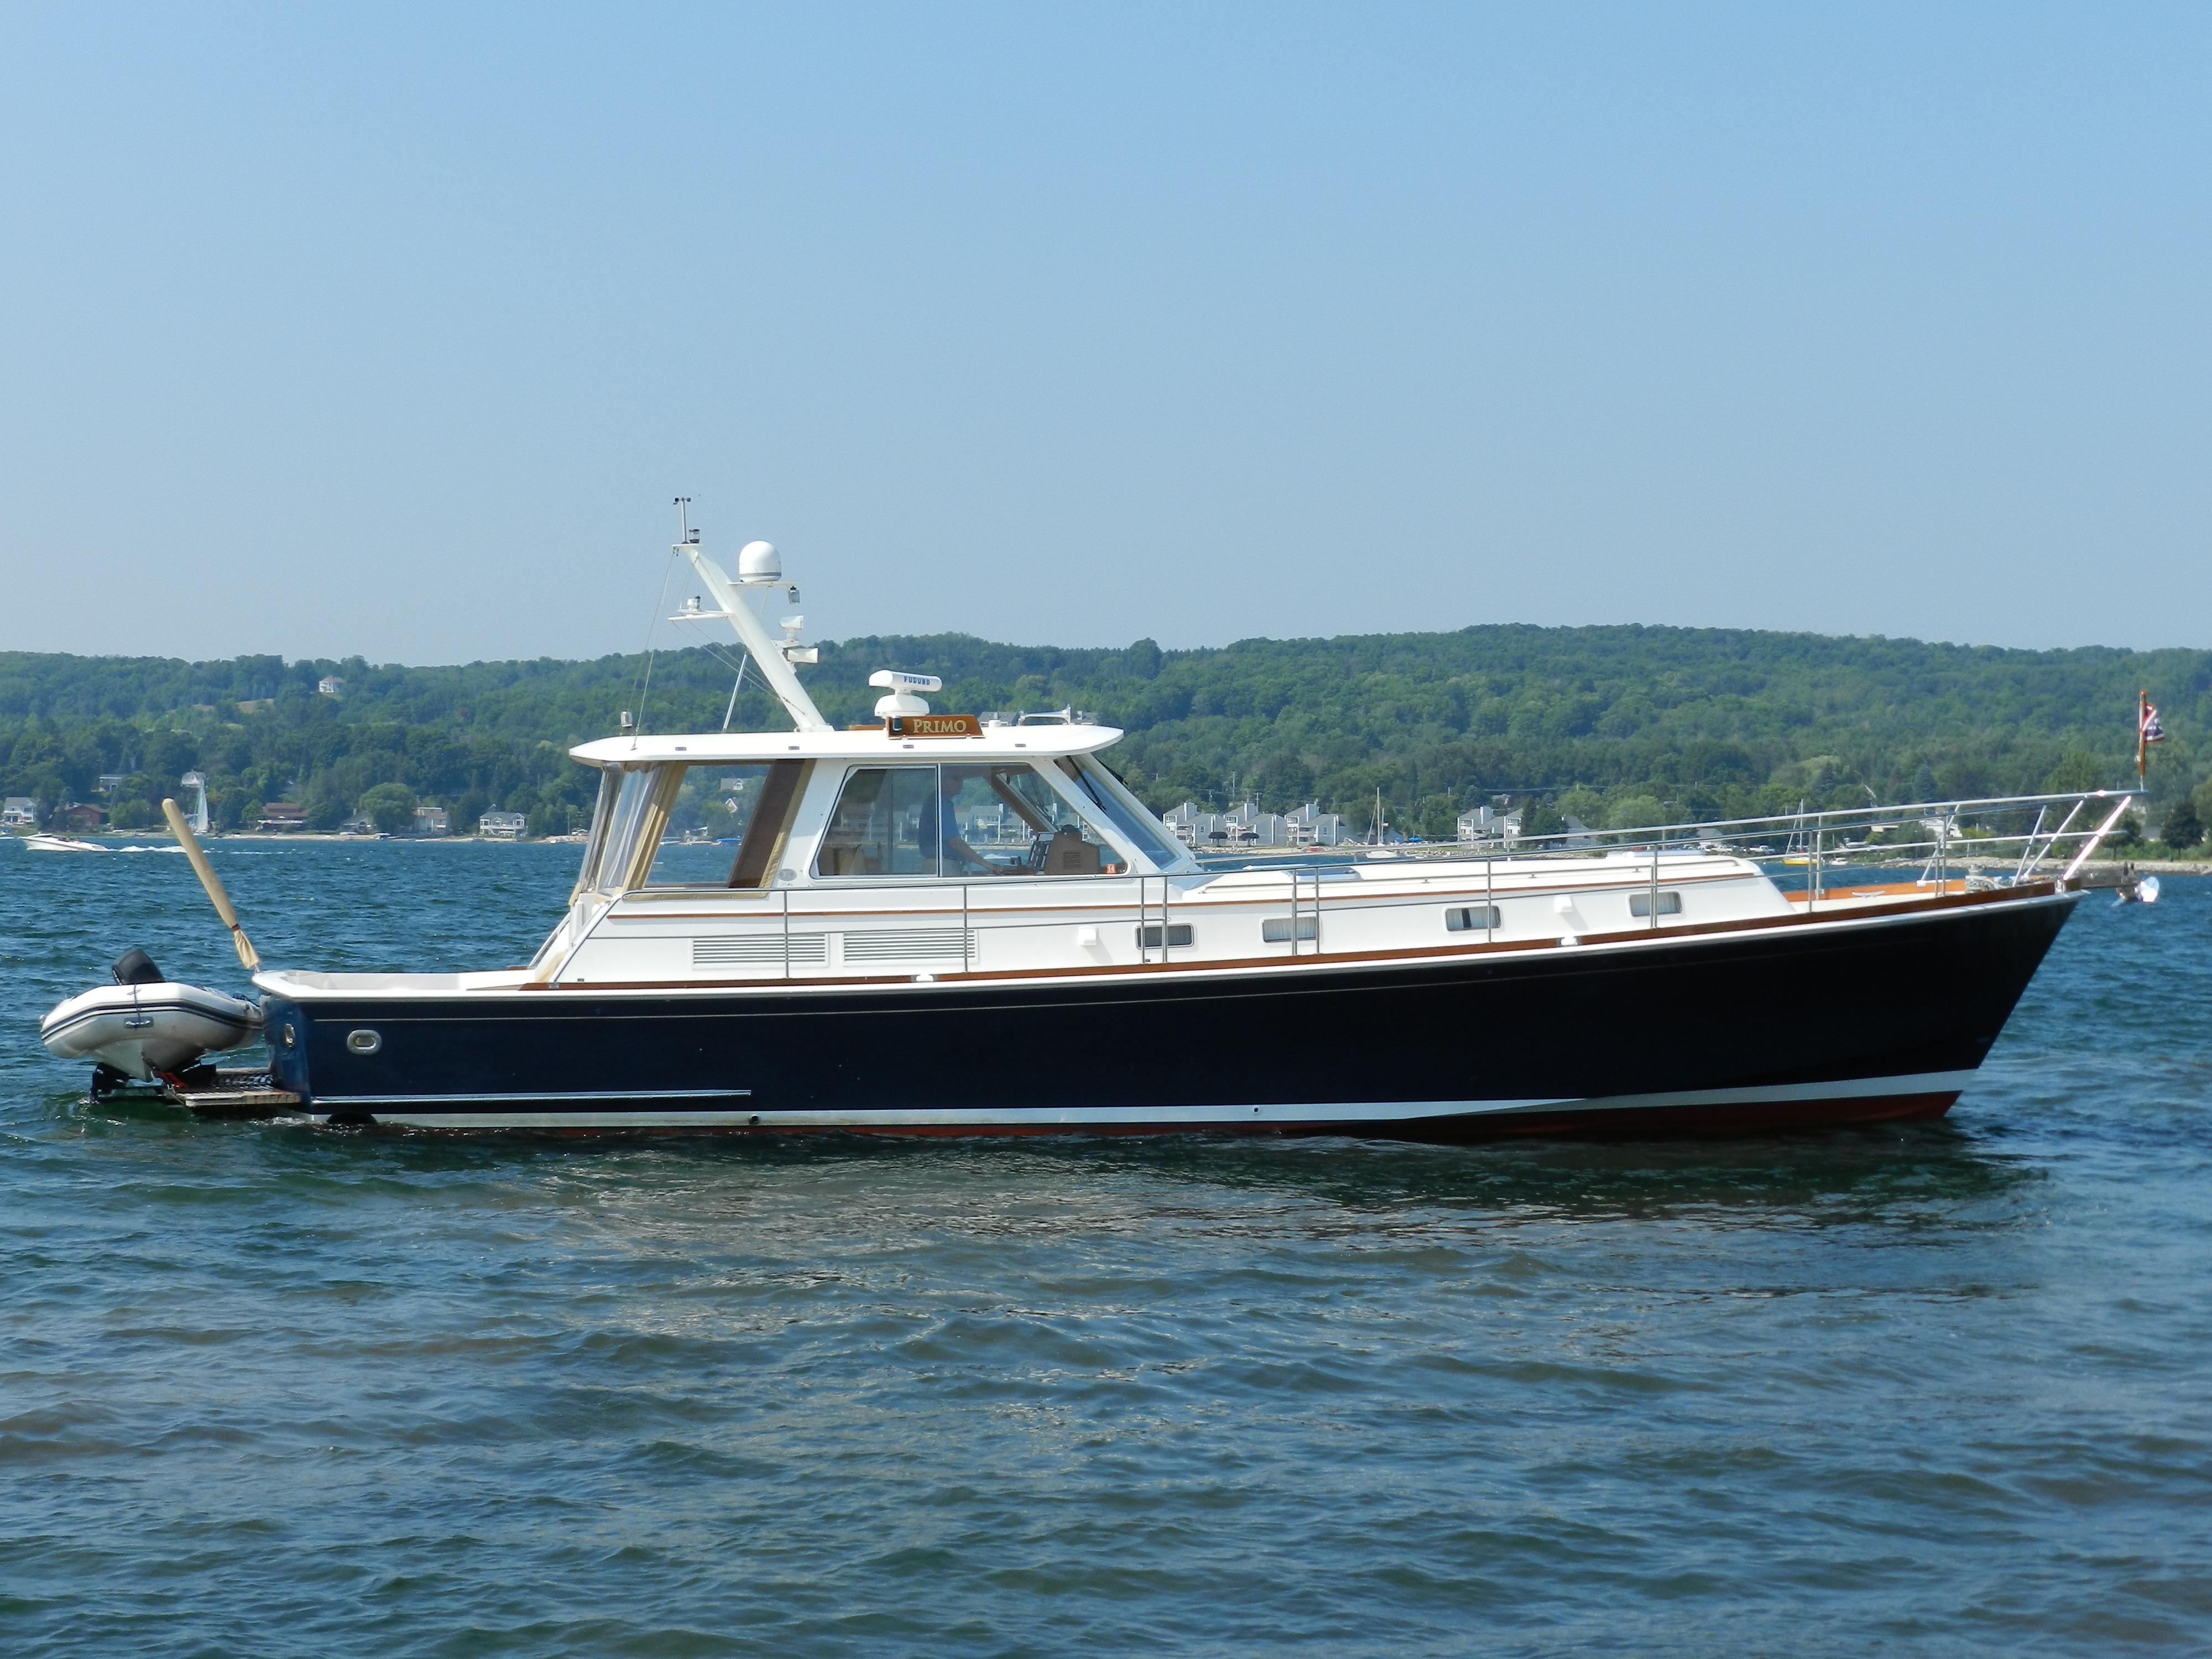 49 ft 2001 grand banks 49 eastbay br8032